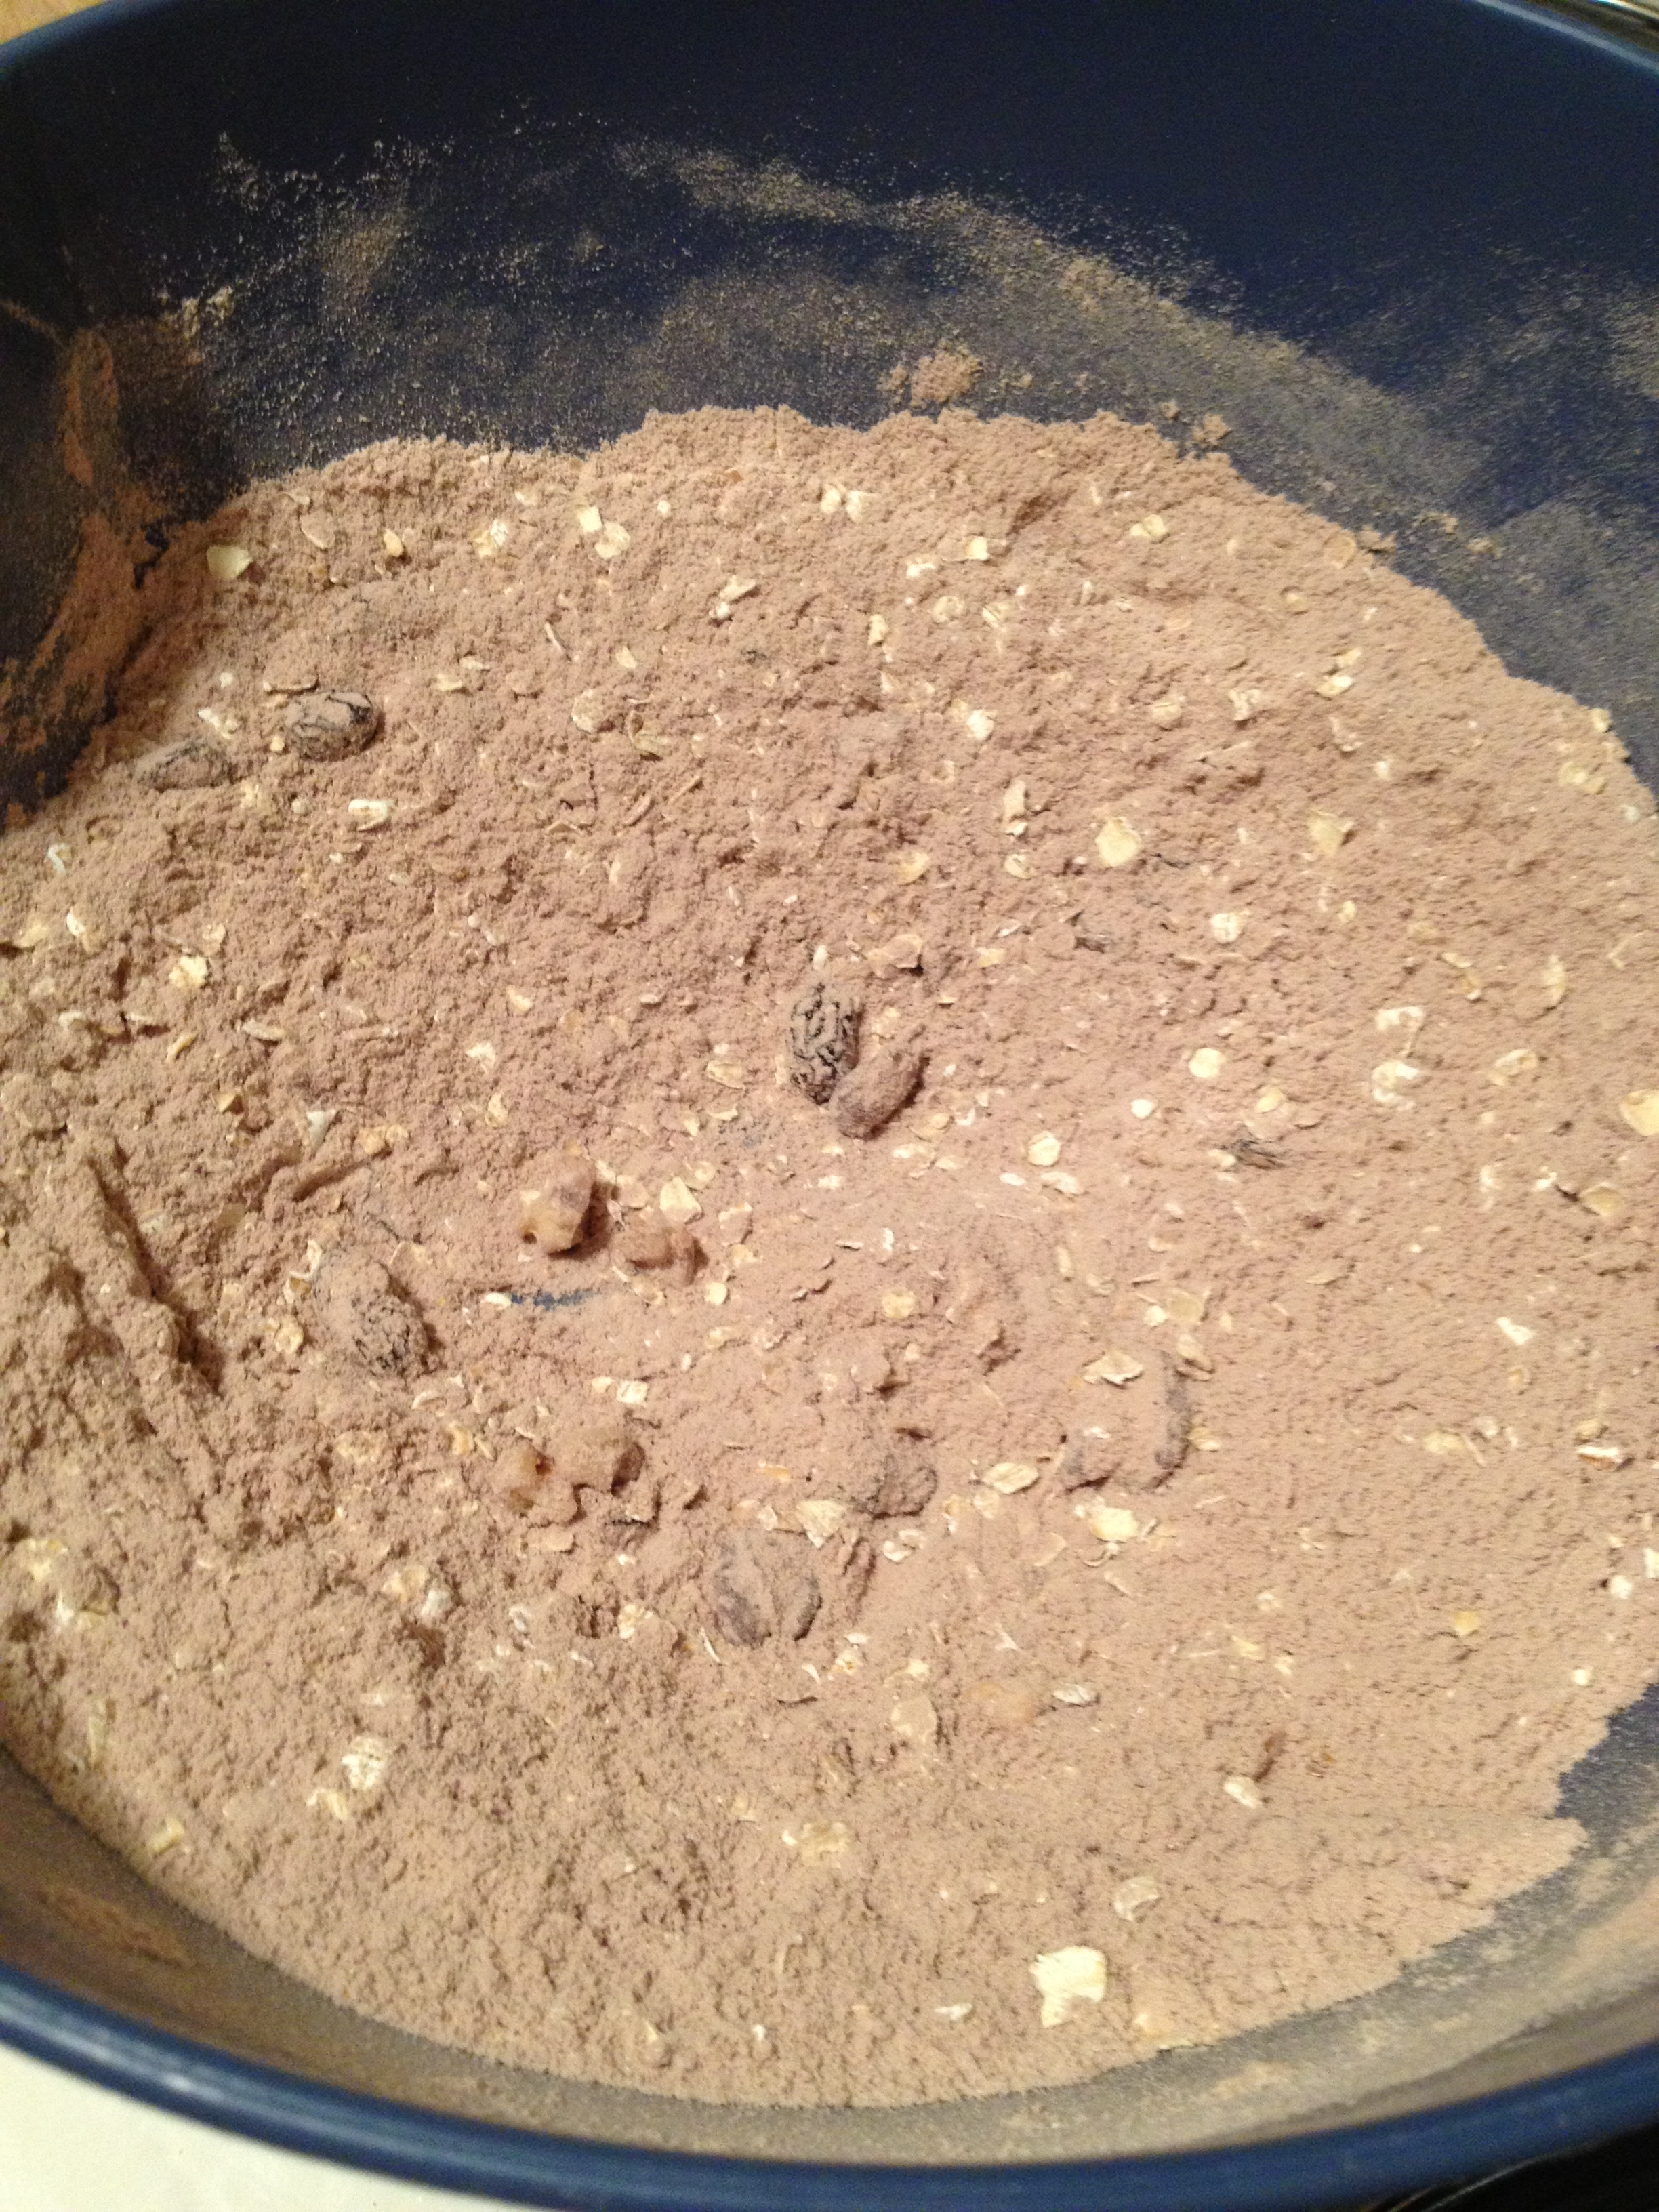 Dry ingredients mixed together